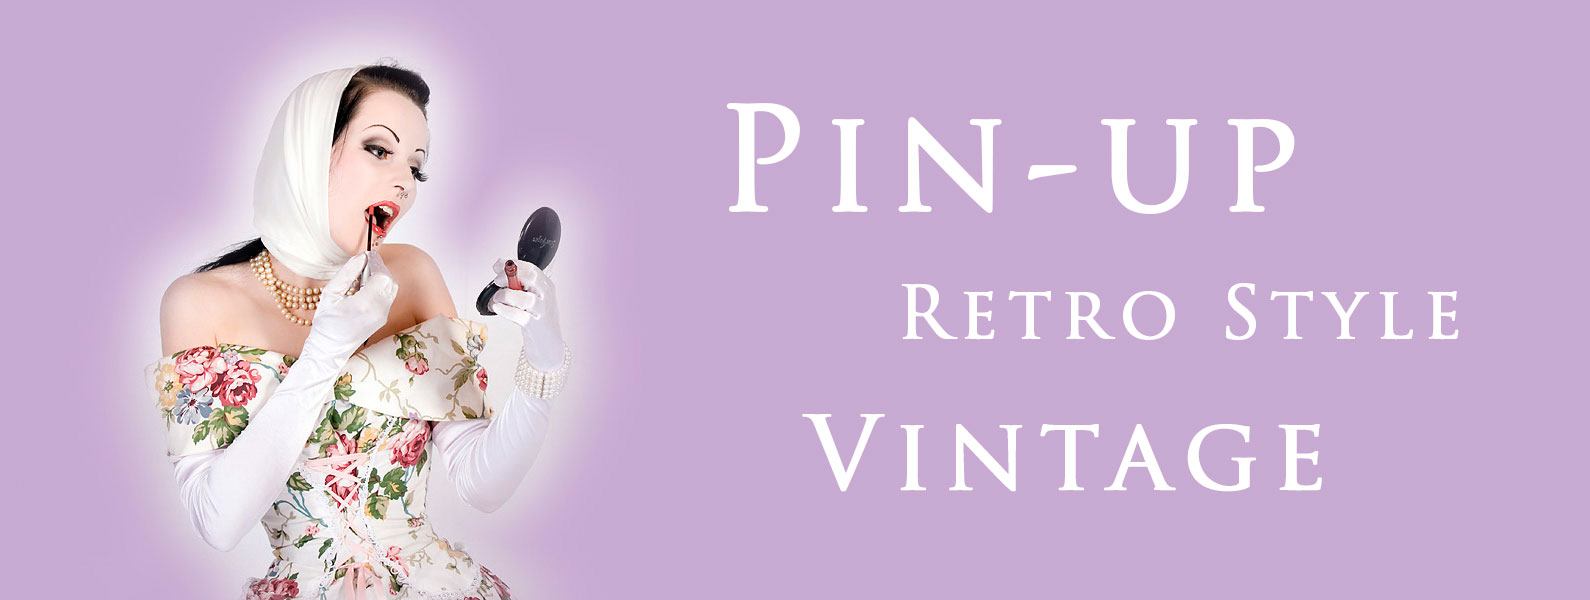 Pin-up Shooting - Make-up - Hairstyling - Retro Style - Fotostudio Kalletal